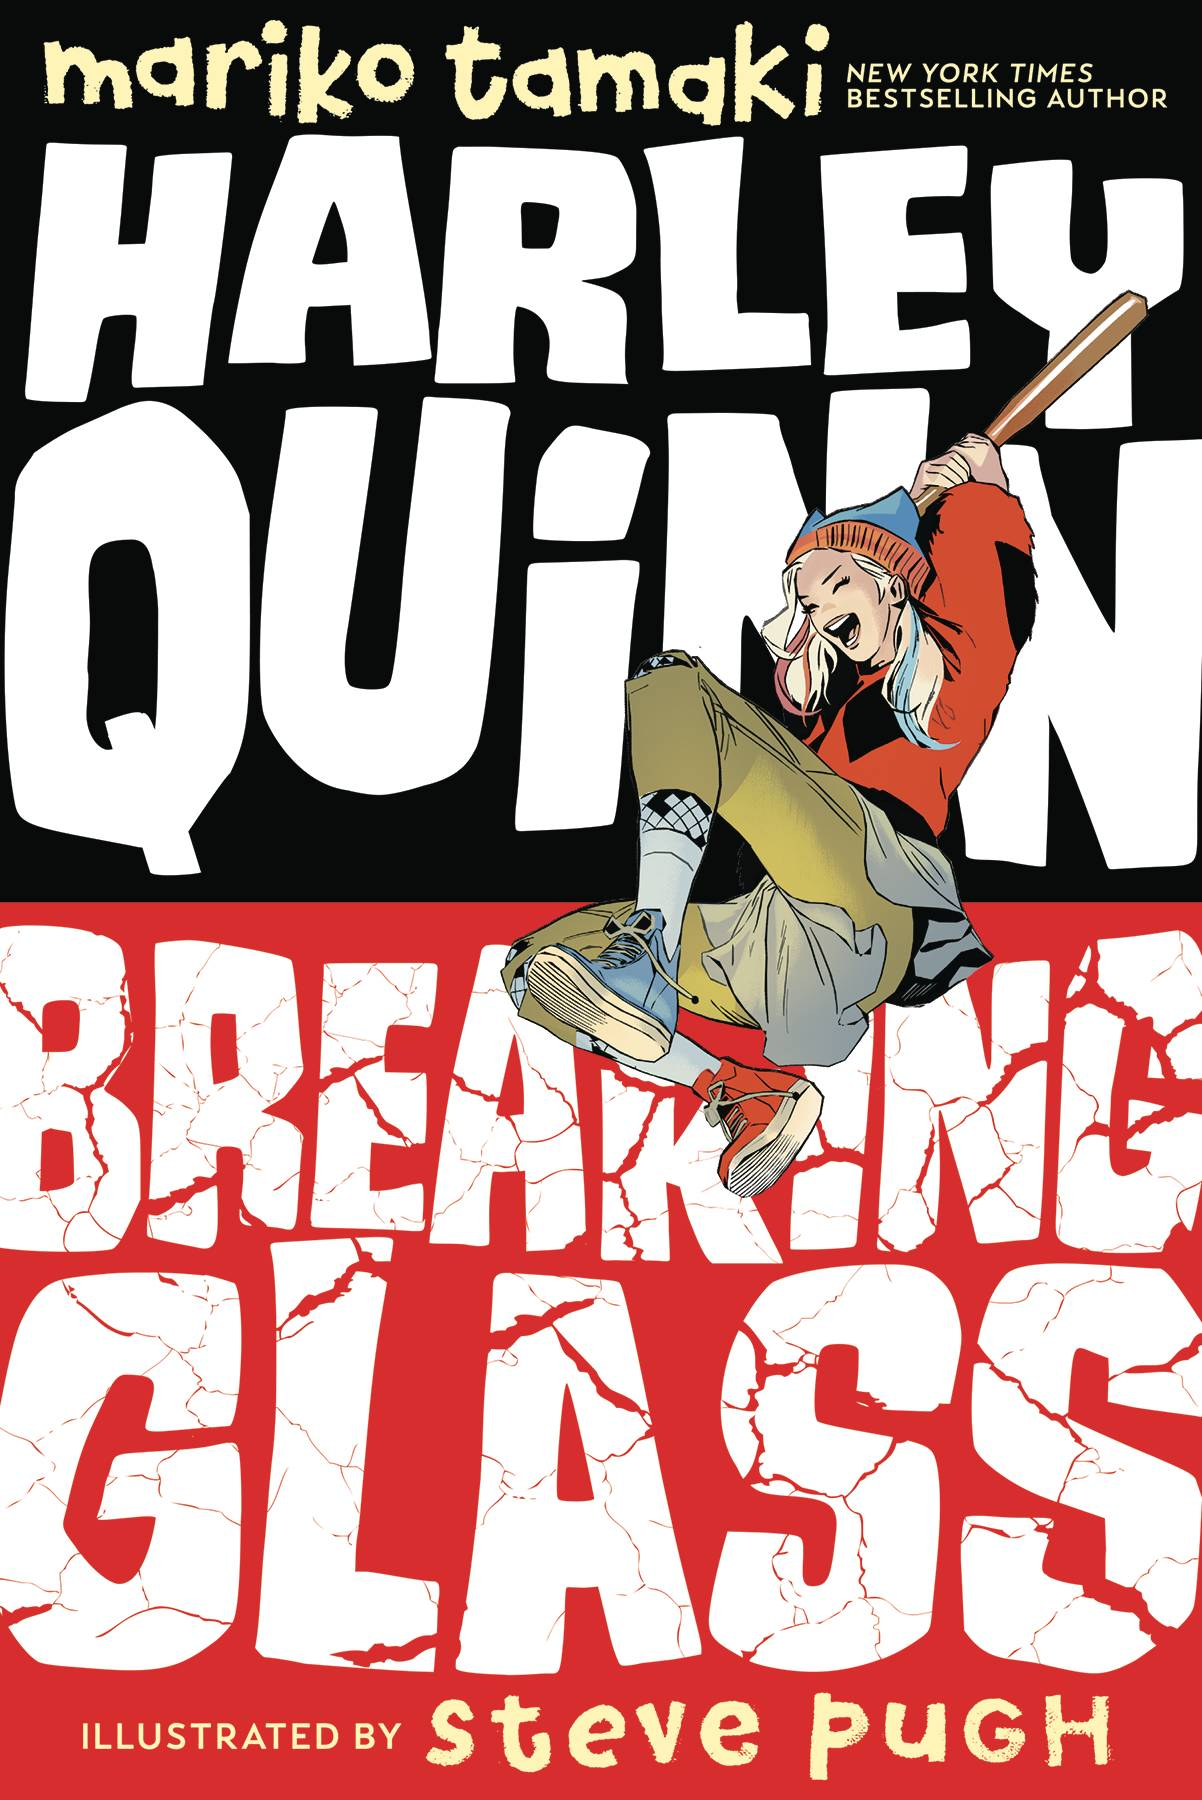 HARLEY QUINN BREAKING GLASS TP DC INK.jpg